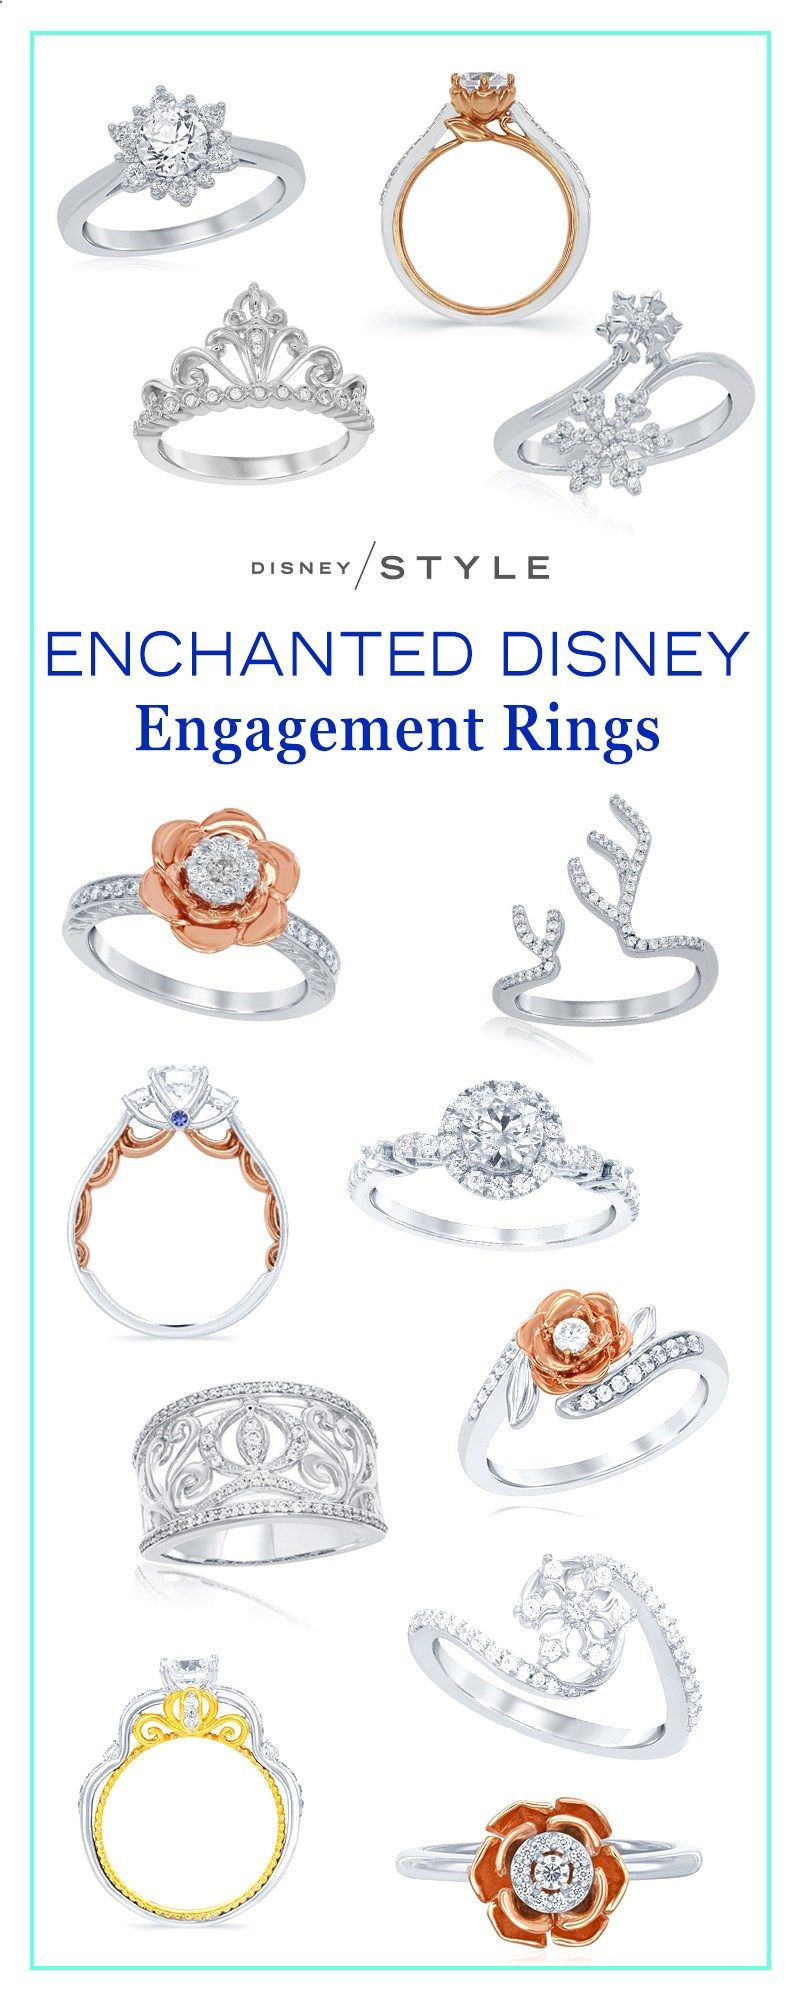 The New Enchanted Disney Engagement Rings Are Truly